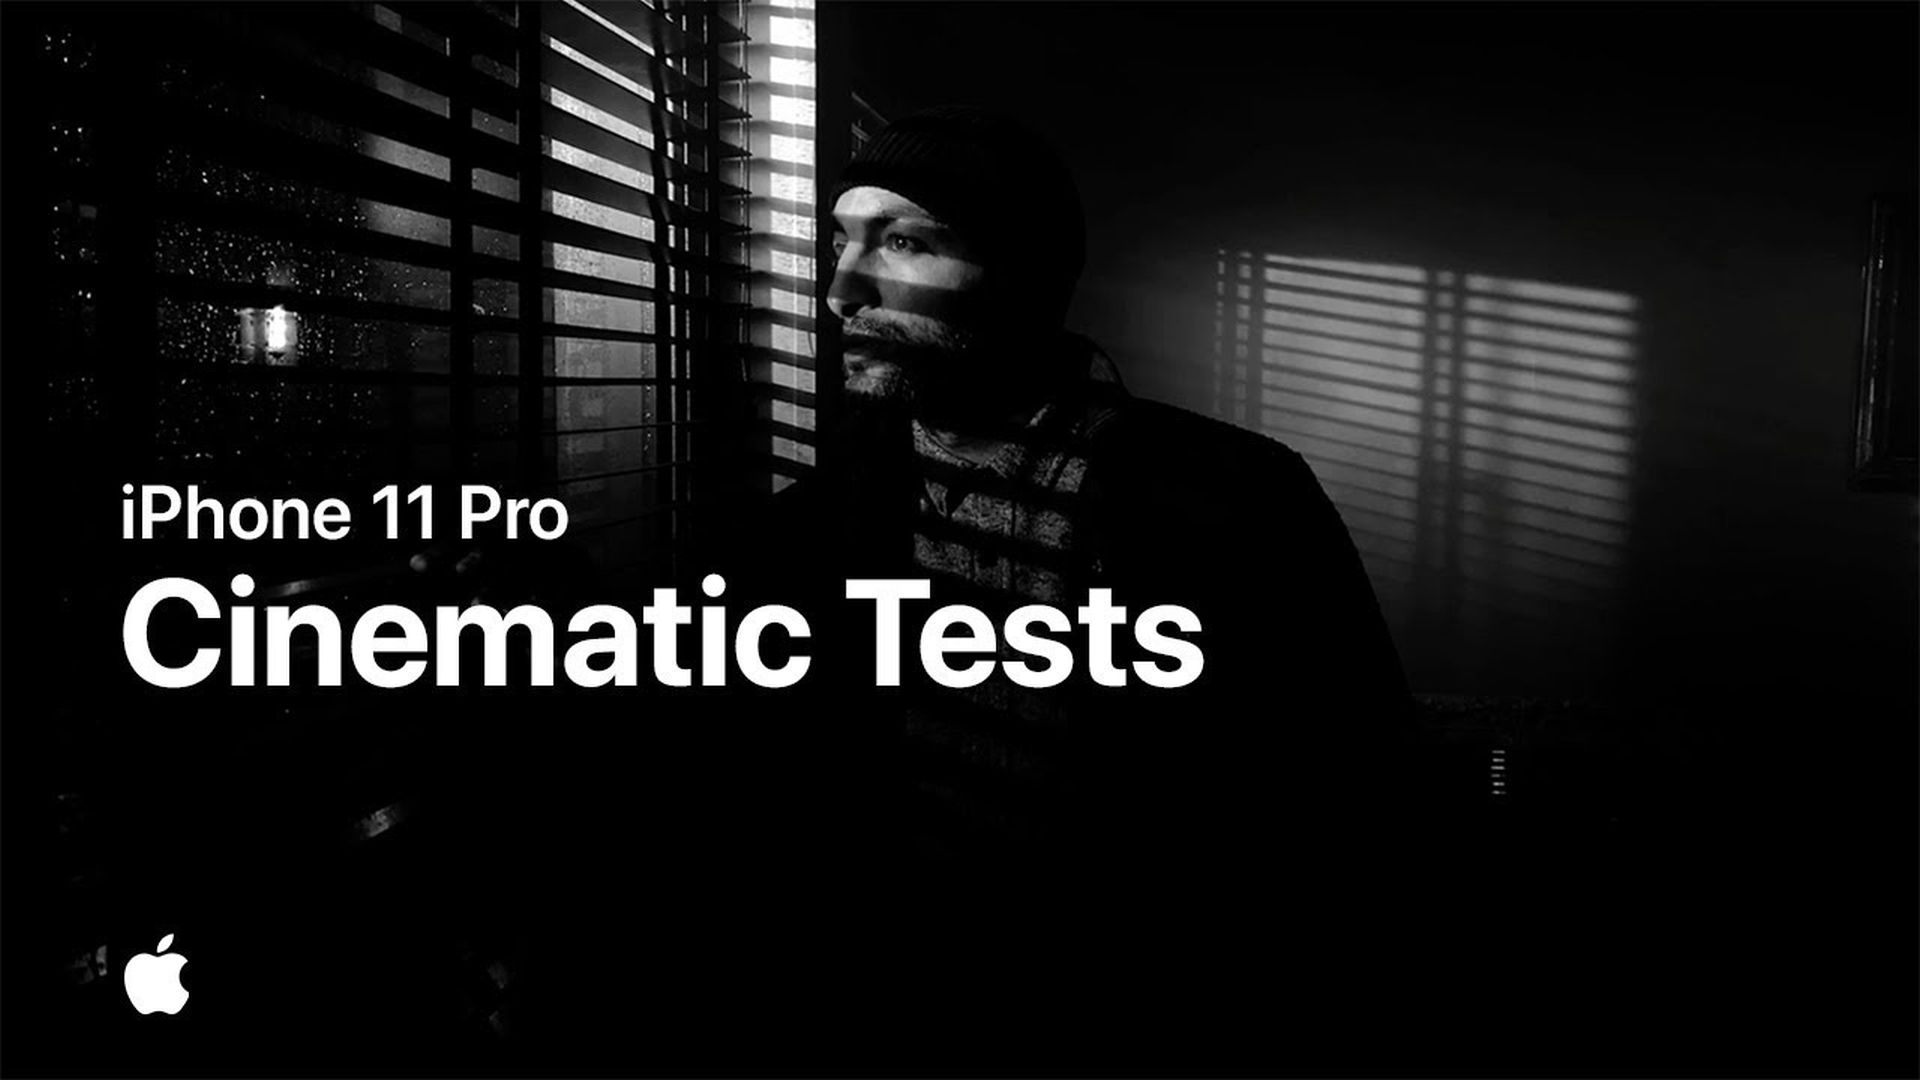 Cinematic Tests film nagrany iPhone'em 11 Pro w 4K